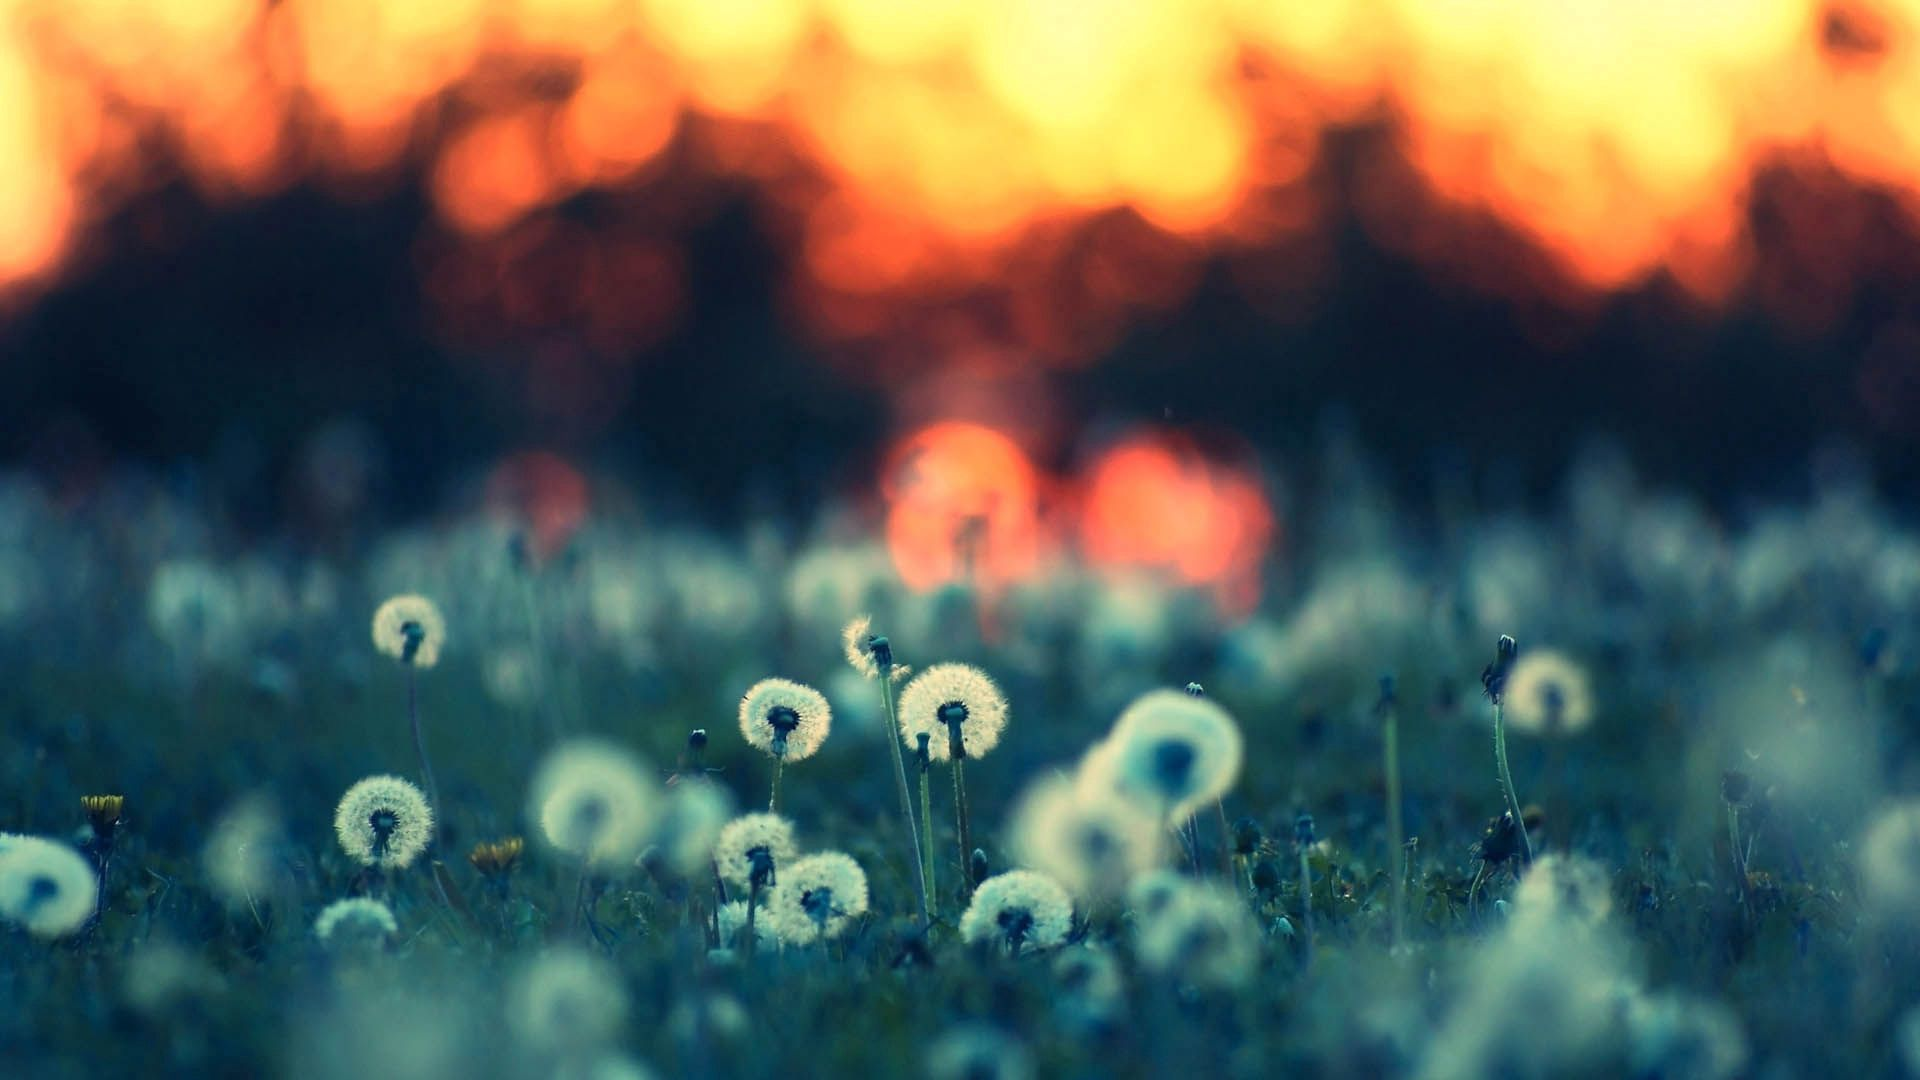 58023 download wallpaper Dandelions, Macro, Shine, Light, Field screensavers and pictures for free